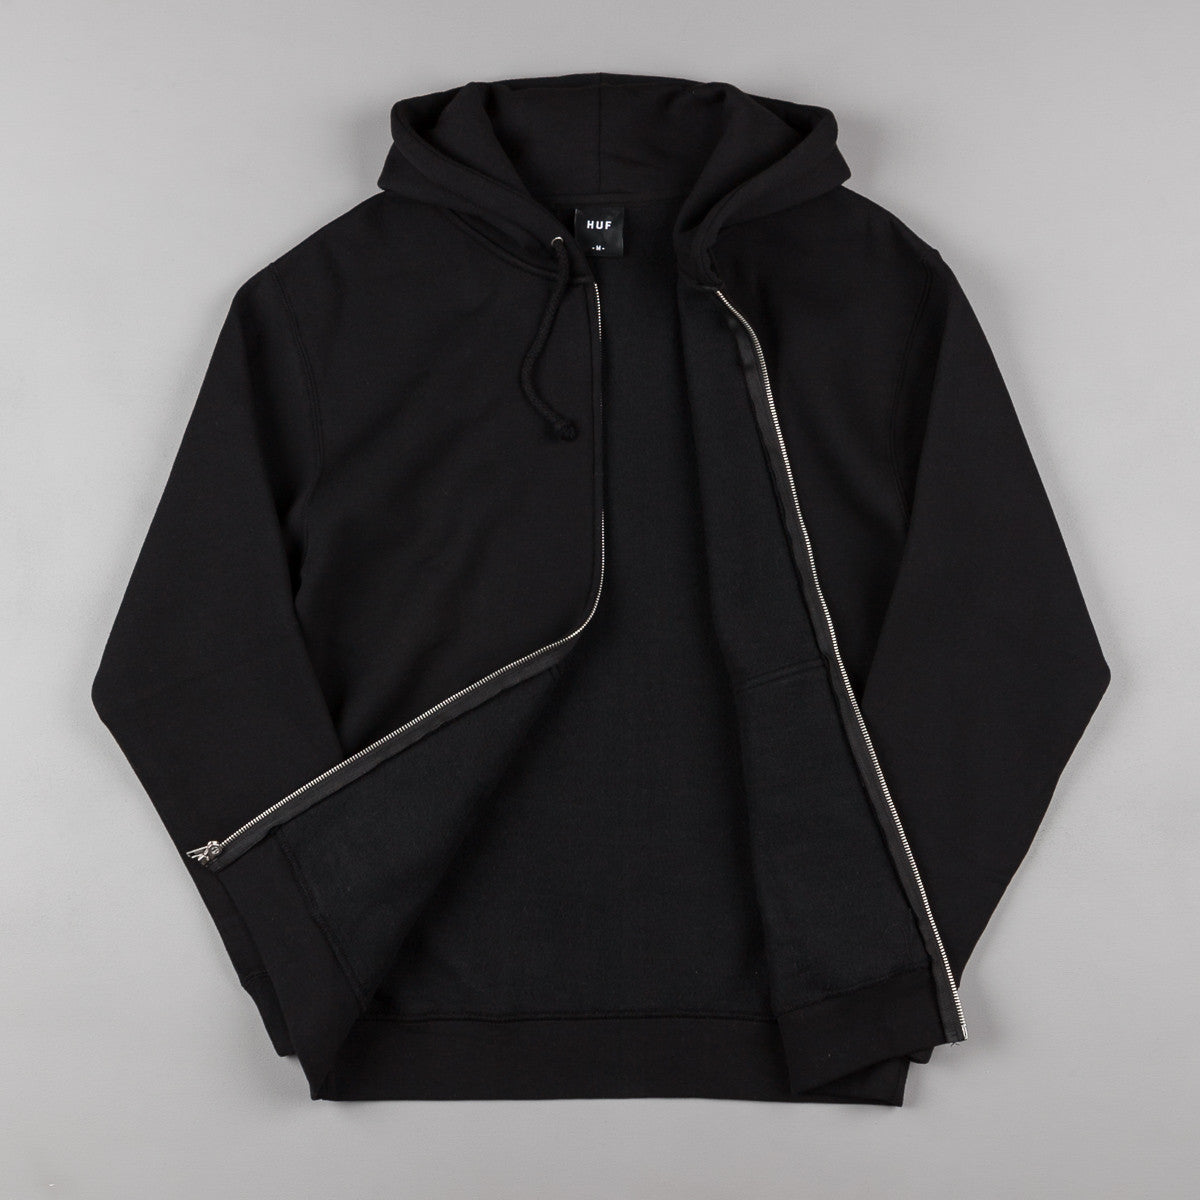 HUF Classic H Zip Up Hooded Sweatshirt - Black